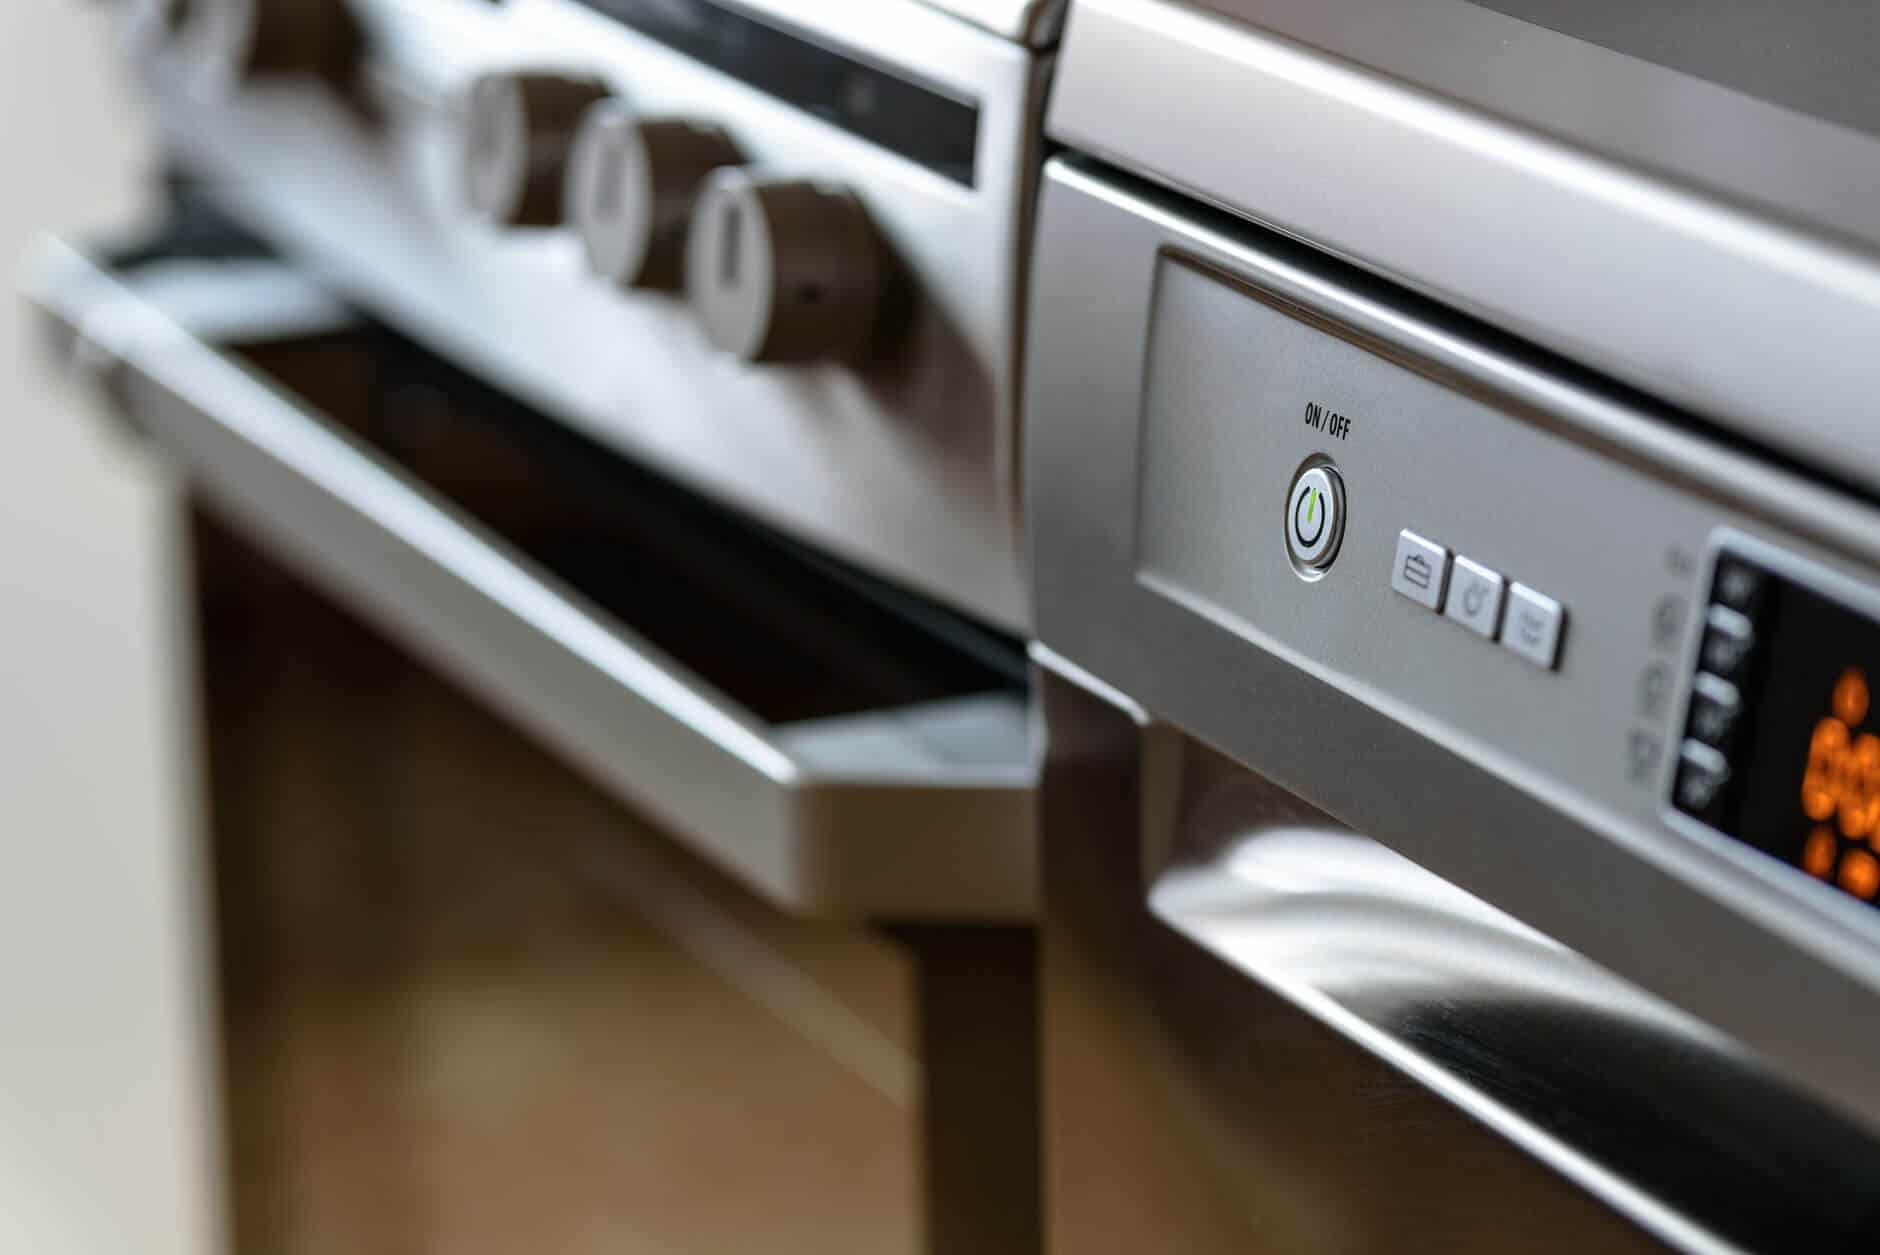 Best Smart Kitchen Appliances: What's Cookin?